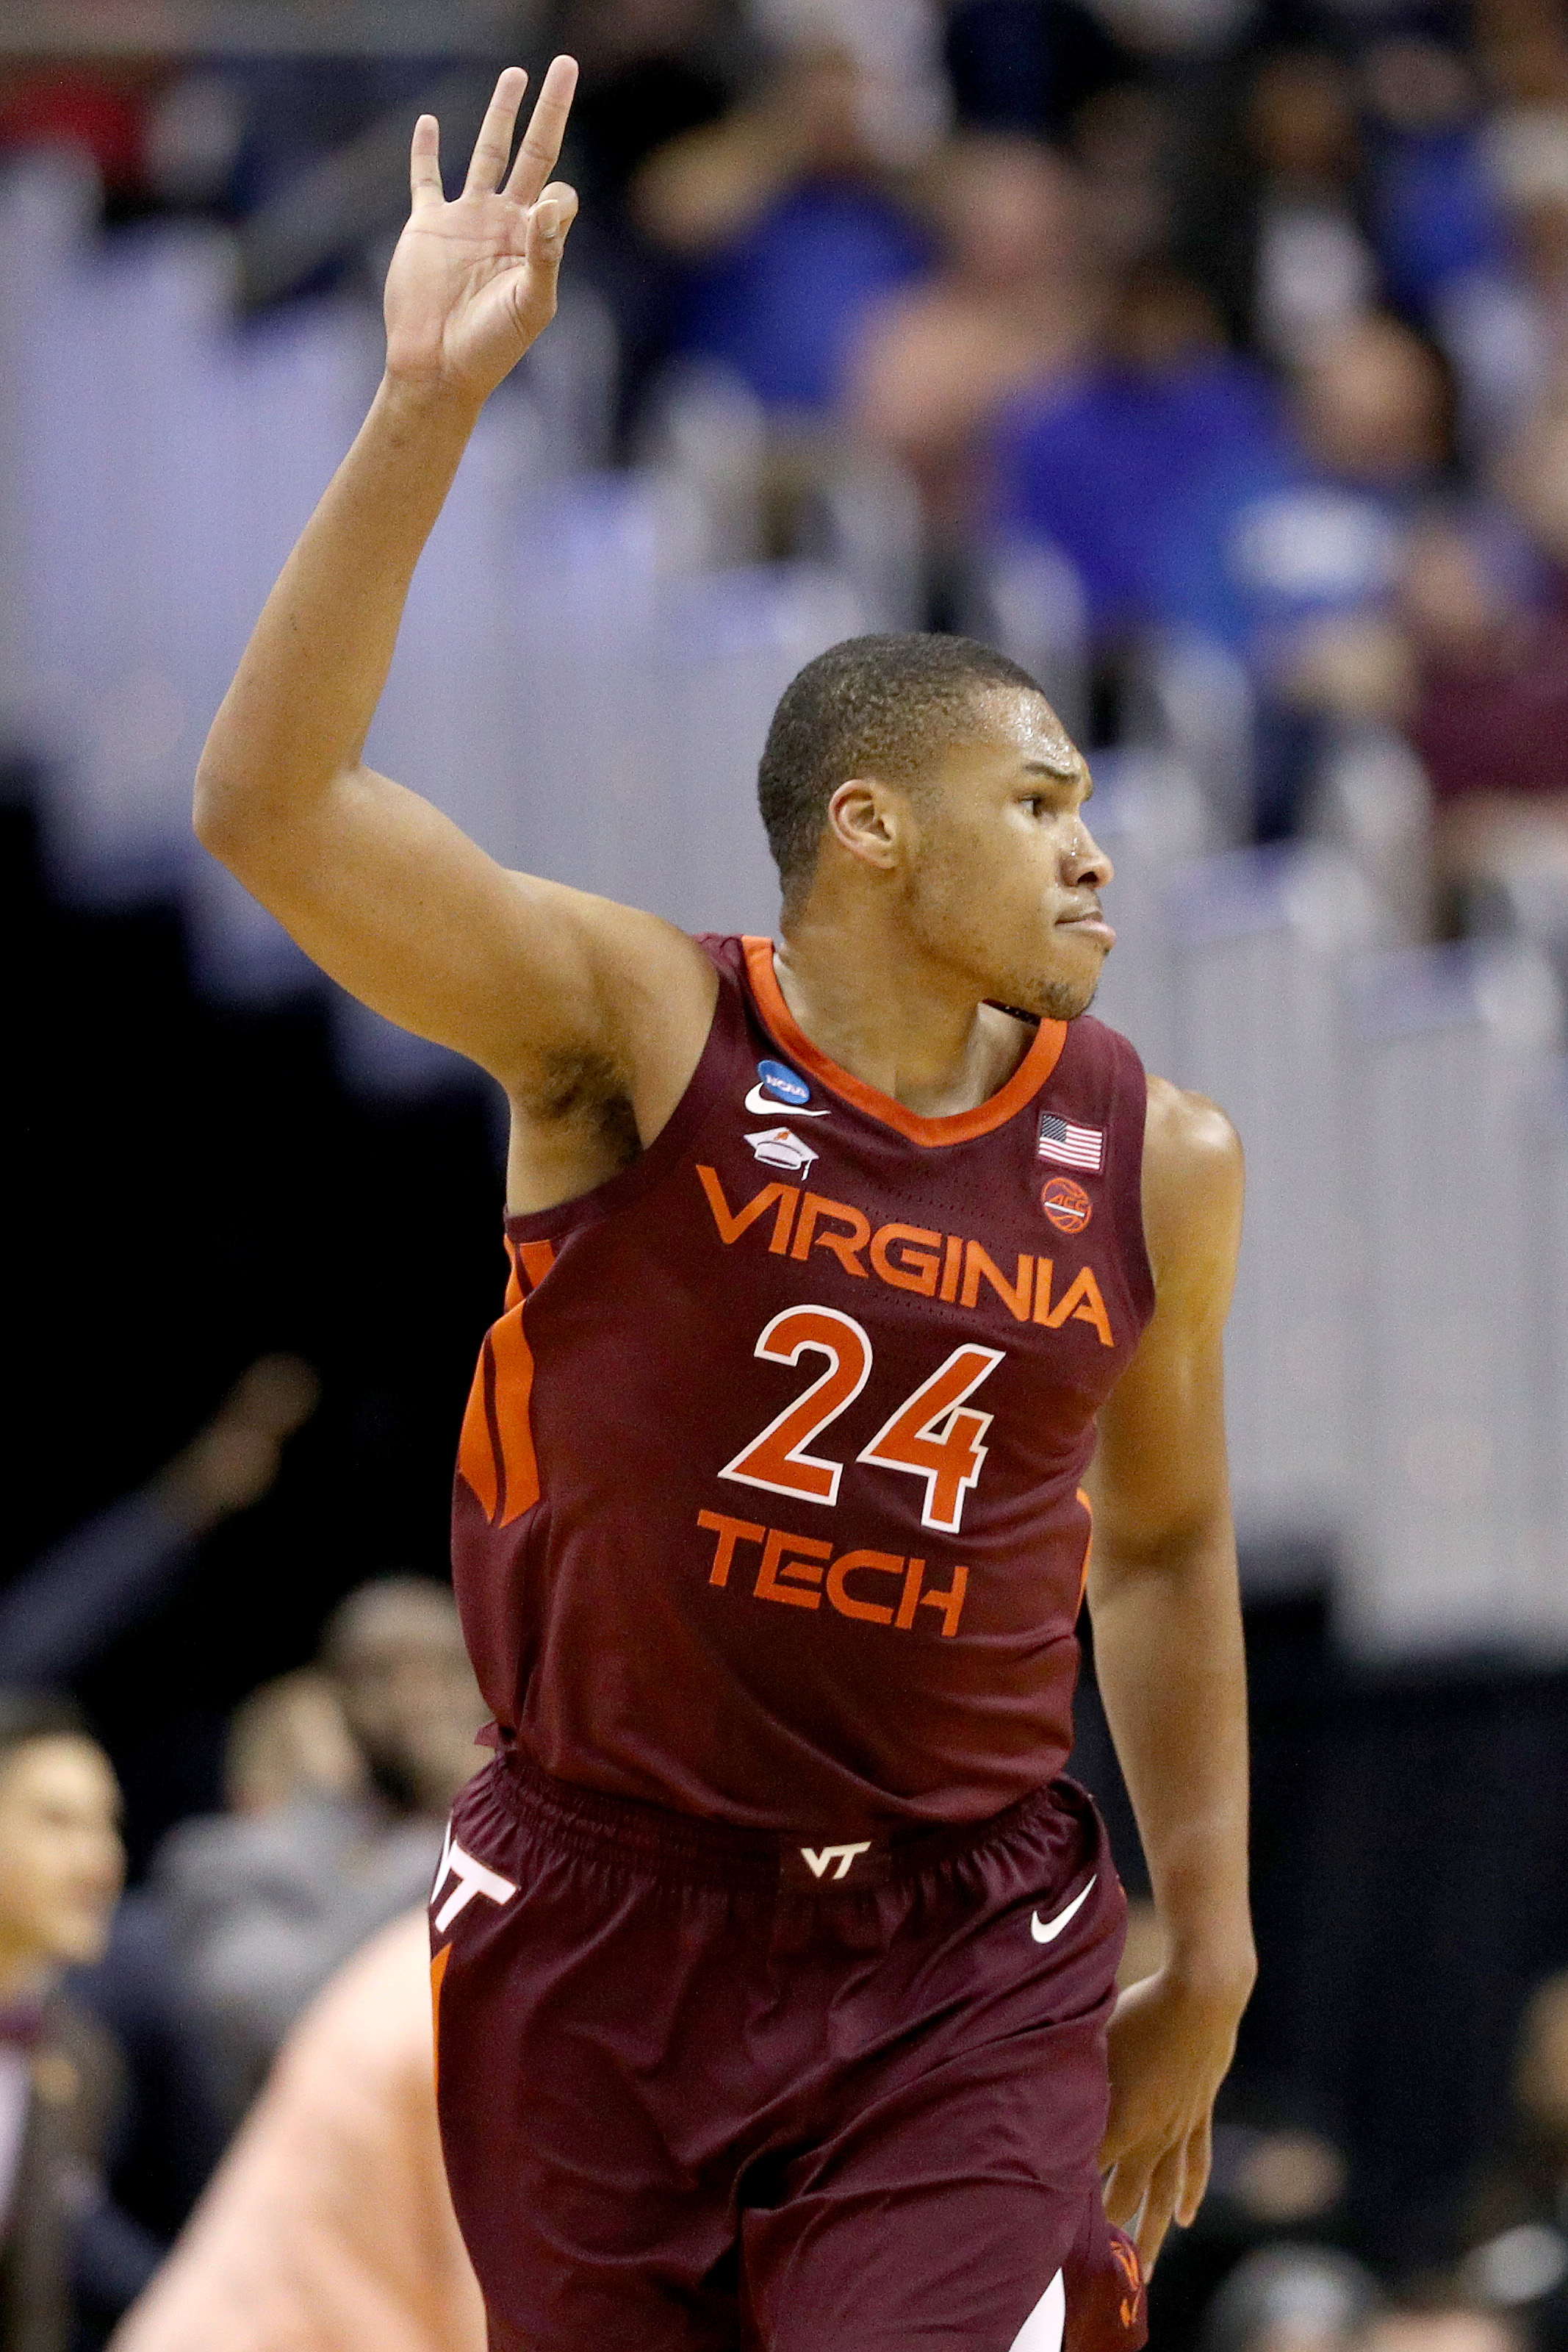 Virginia Tech v Duke